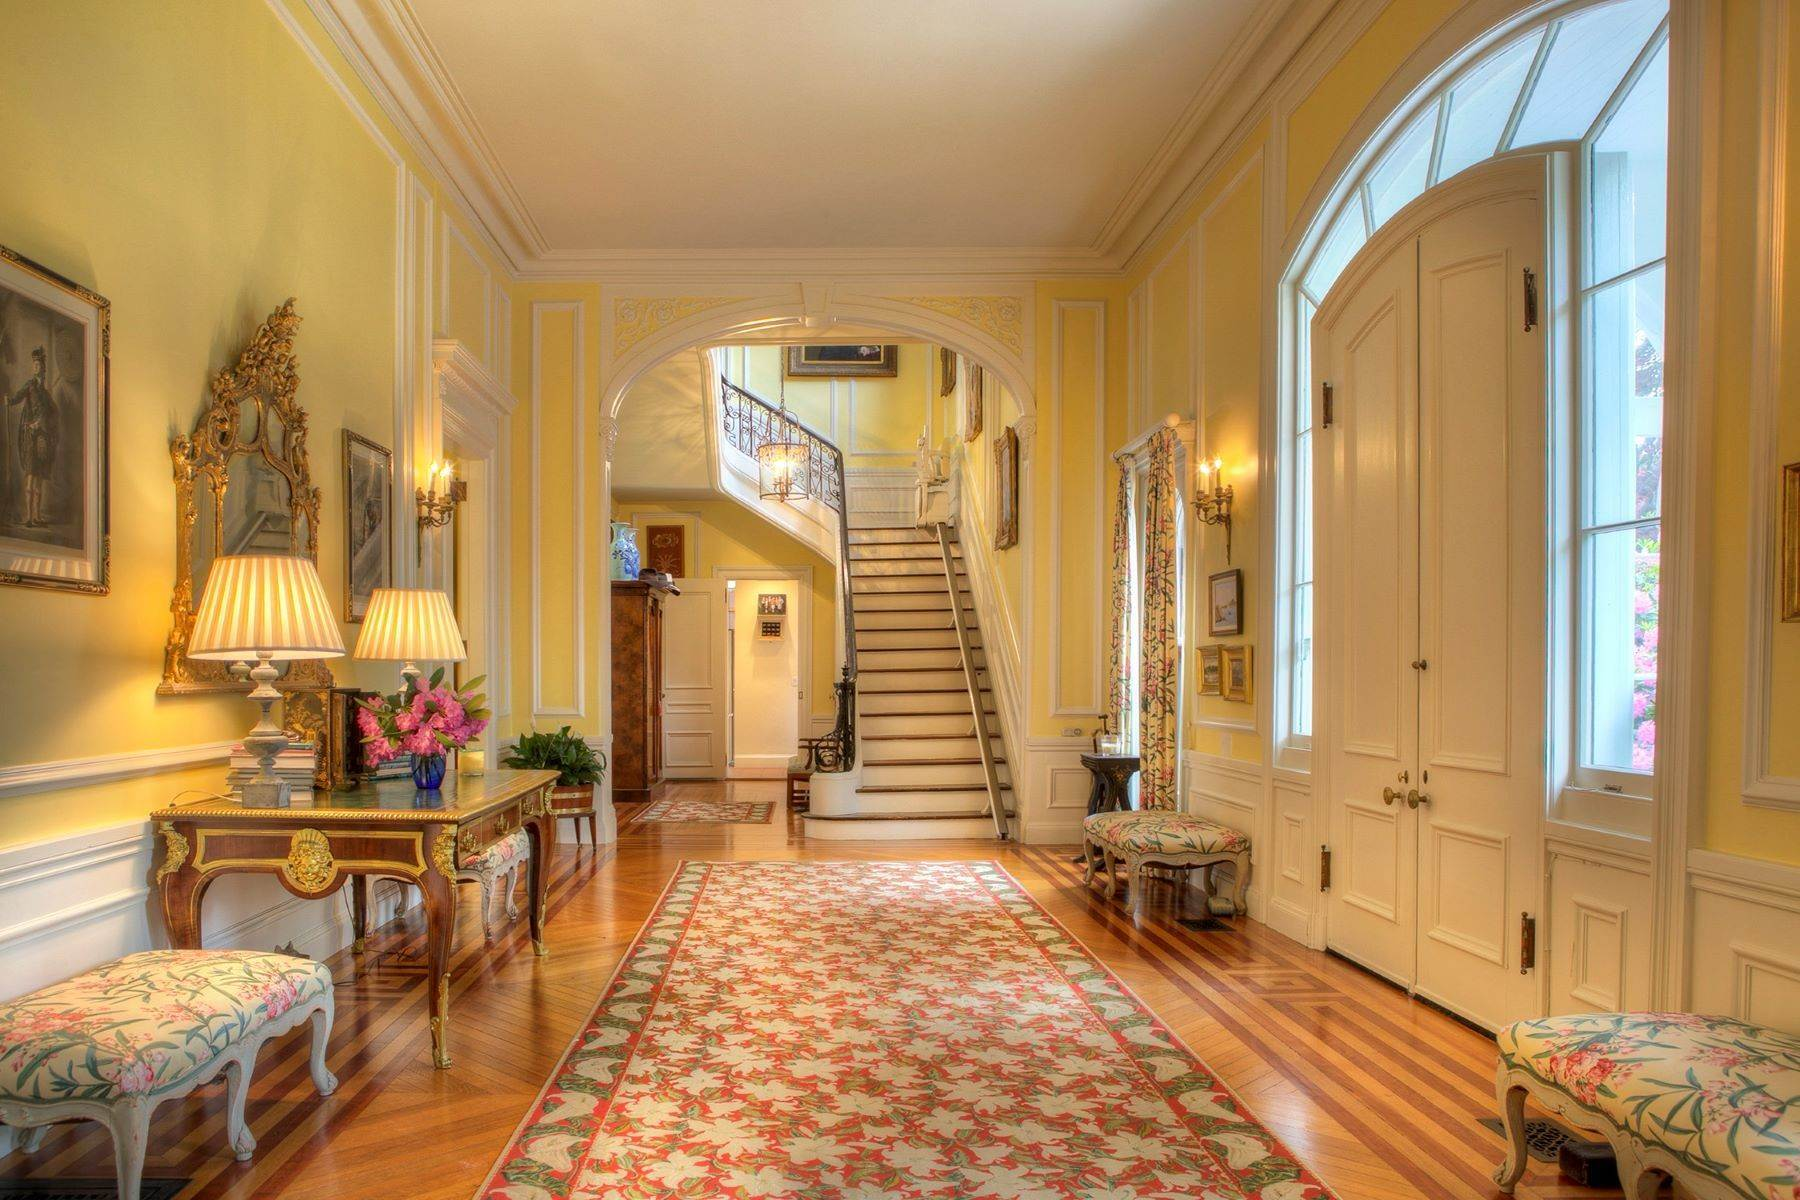 25. Single Family Homes for Sale at Gravel Court 21 Clay Street Newport, Rhode Island 02840 United States